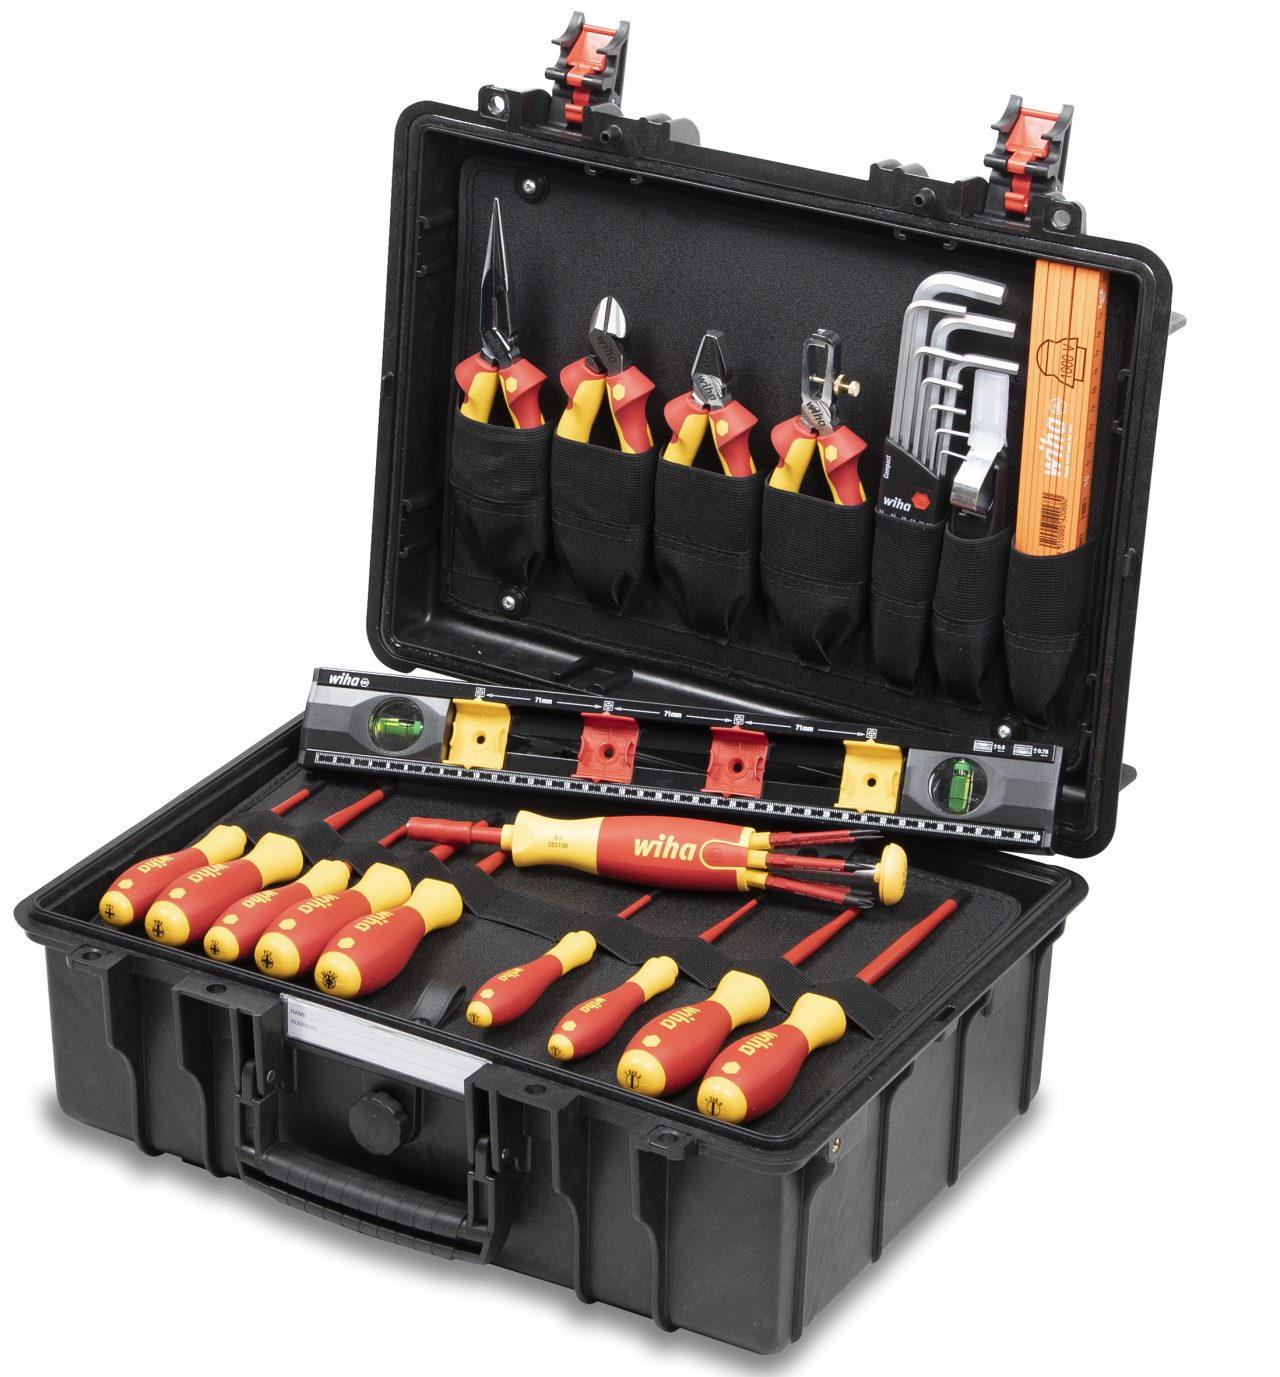 Wiha_930070401_Tool-case-basic-set-L-electric_01-1280x1377.jpg